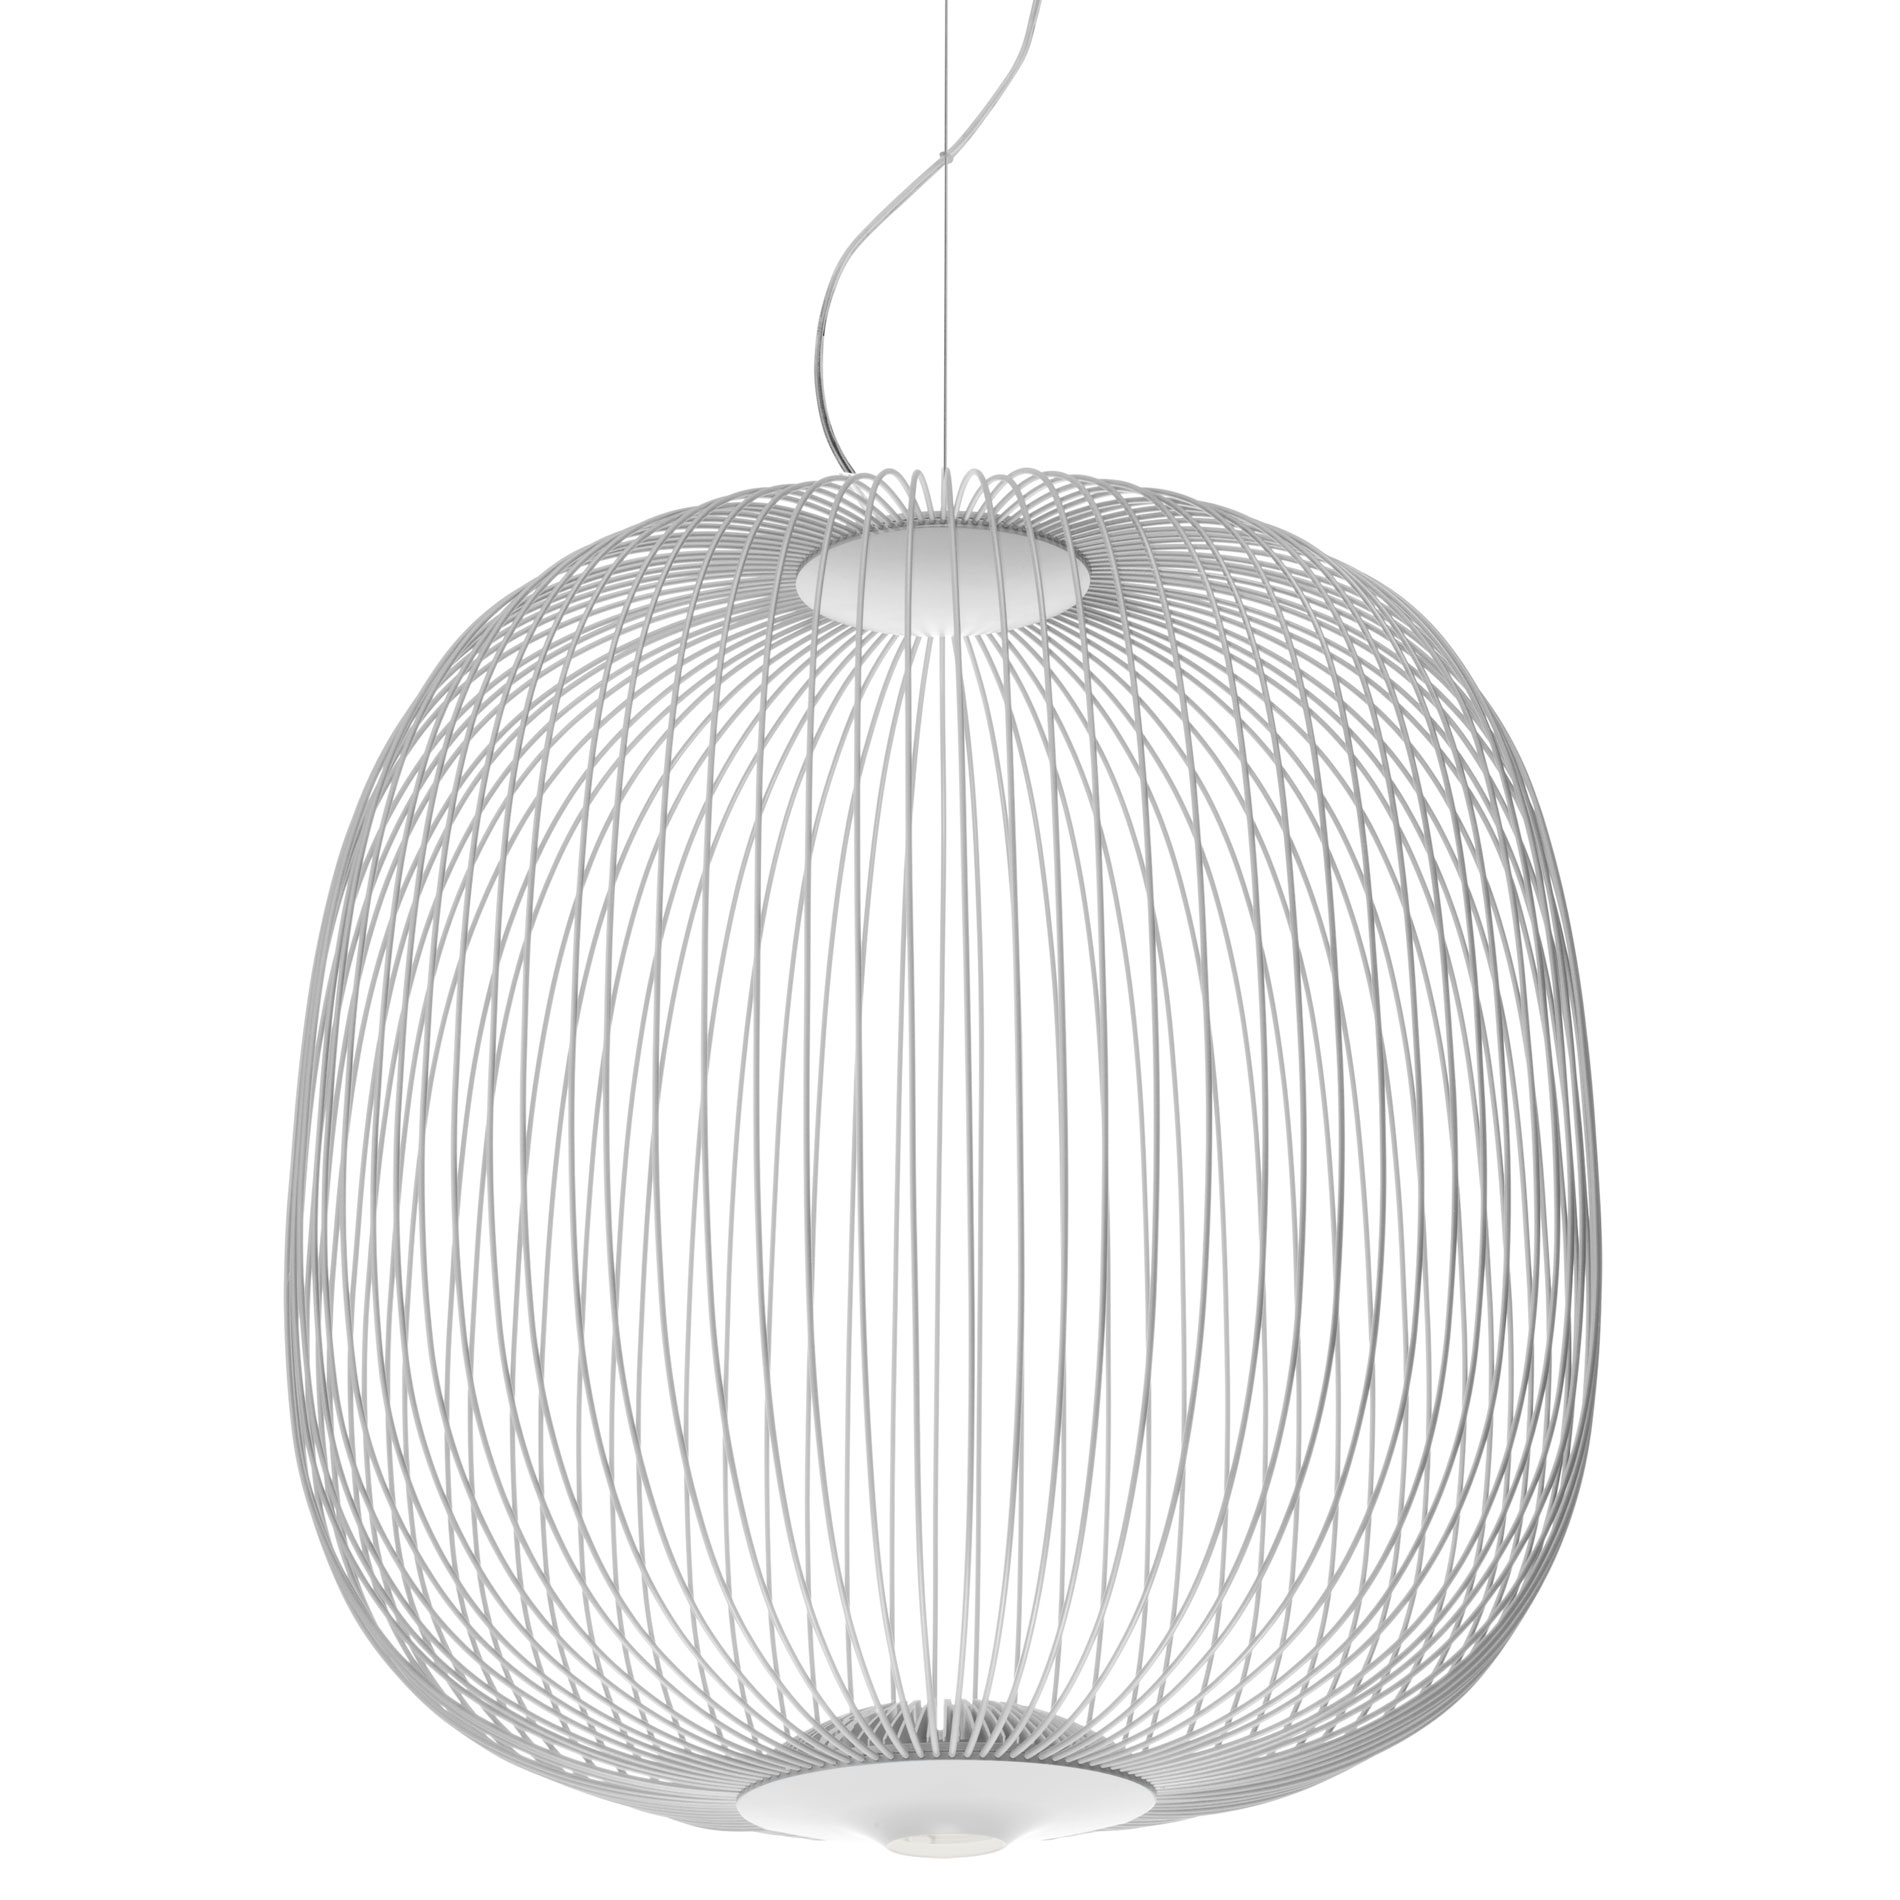 Foscarini Lights Spokes 2 Large Pendant By Foscarini 2640172 10 Ul